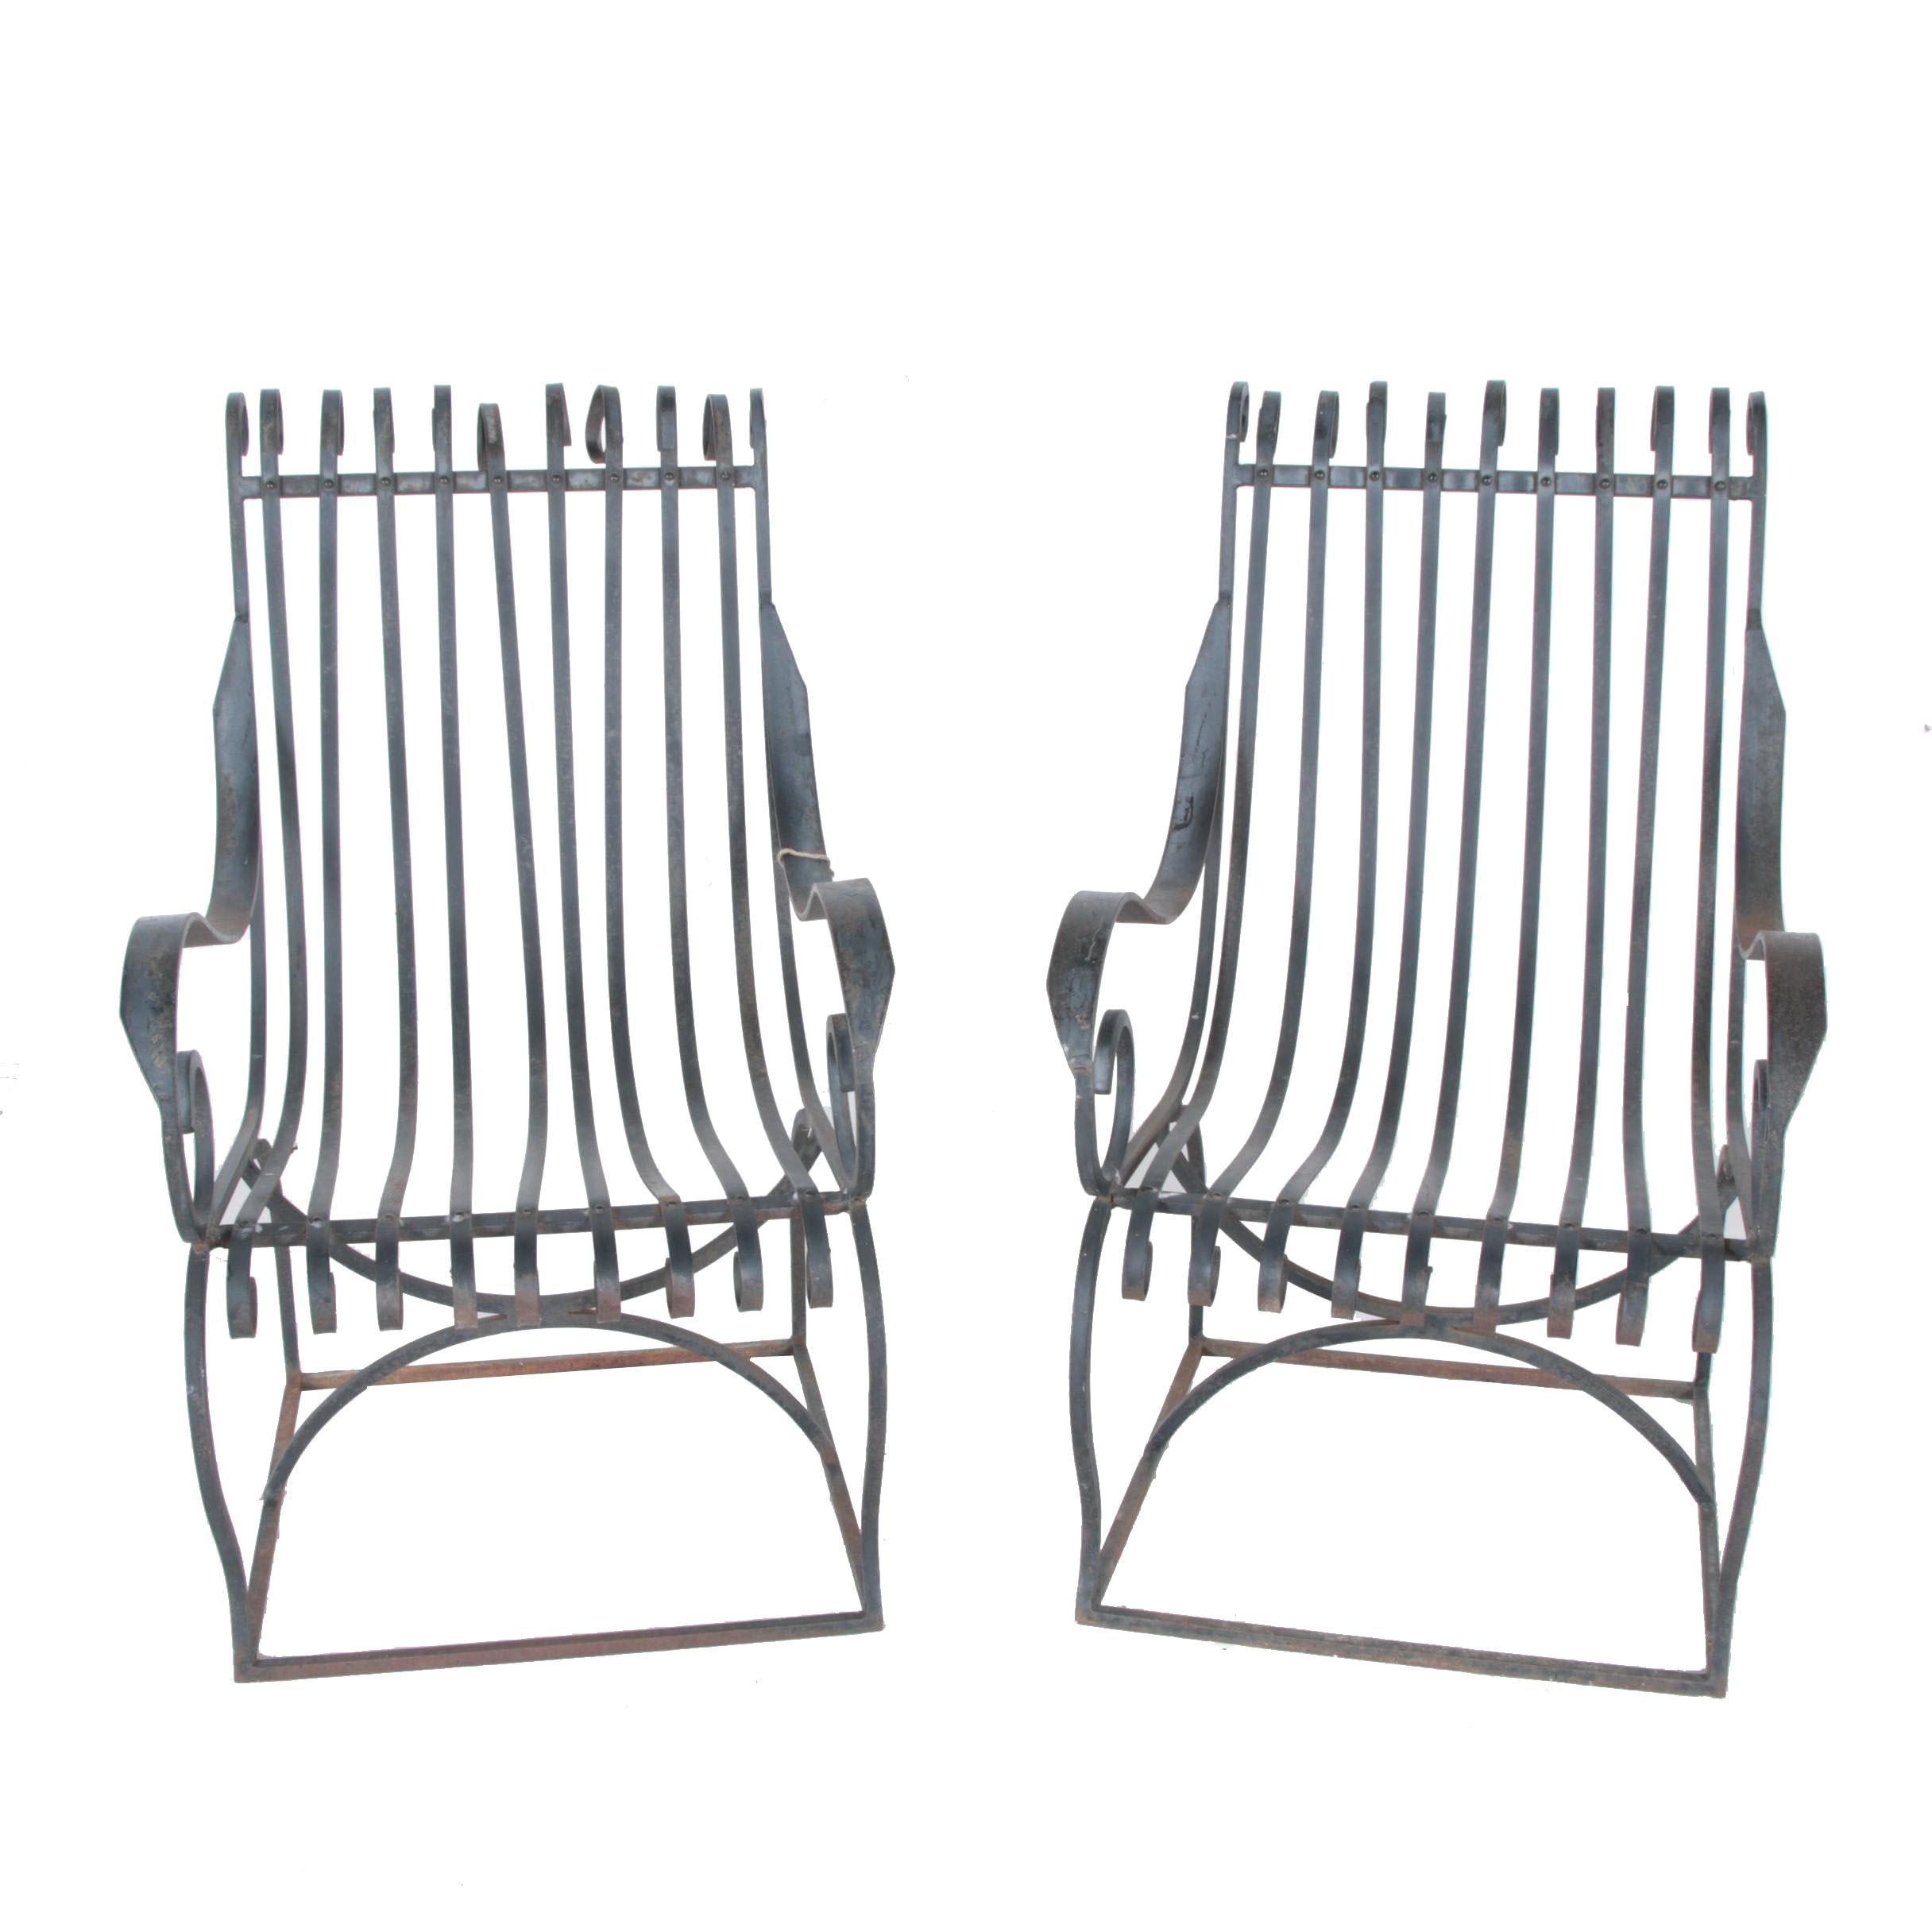 Pair of Wrought Iron and Scrolled Steel Garden Chairs